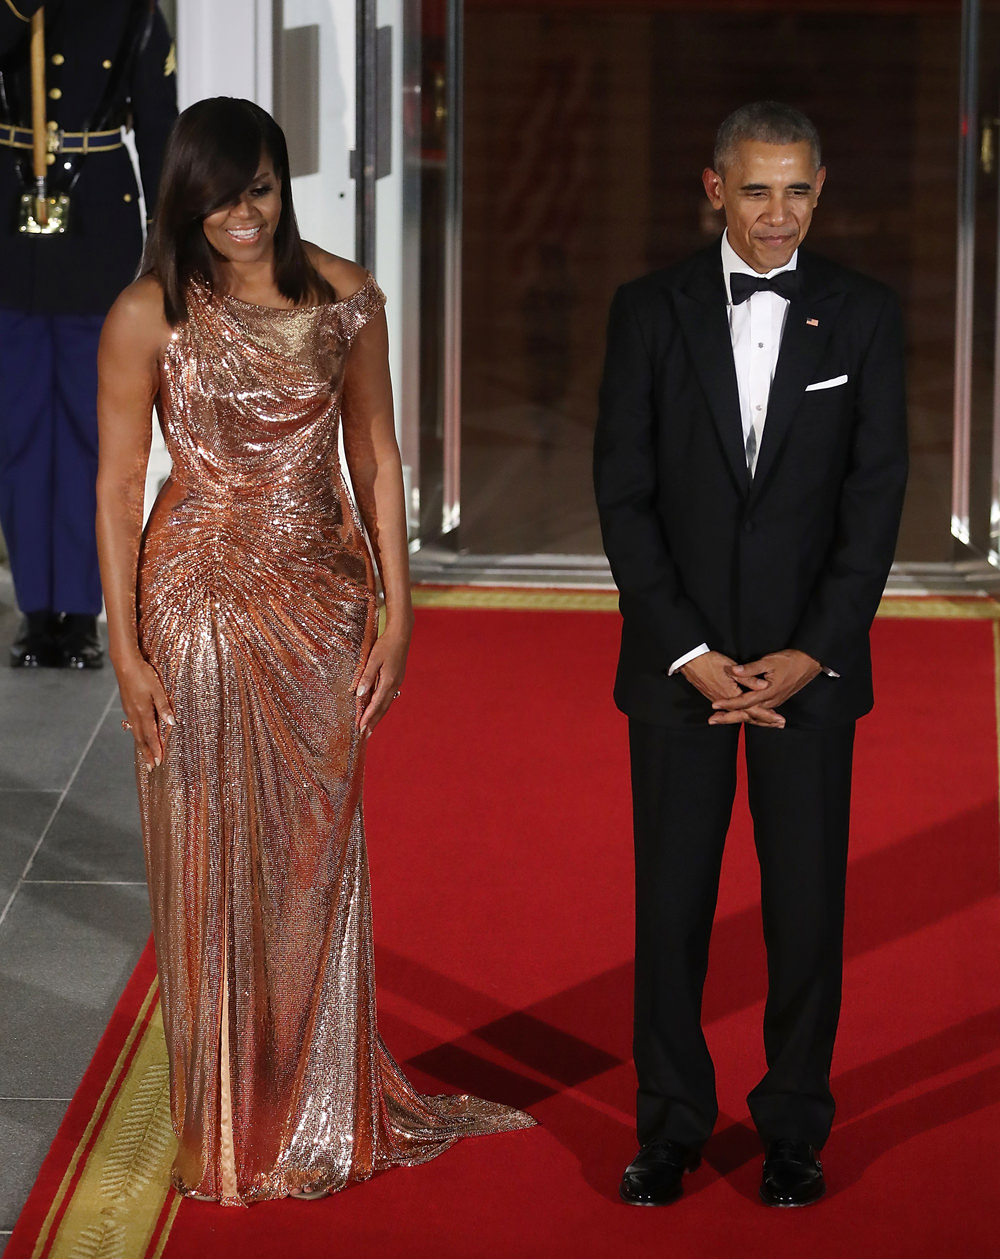 Michelle Obama and Barack Obama at the   White House state dinner,2016. She wears a custom dress by Versace.  Photo source: Getty Images.